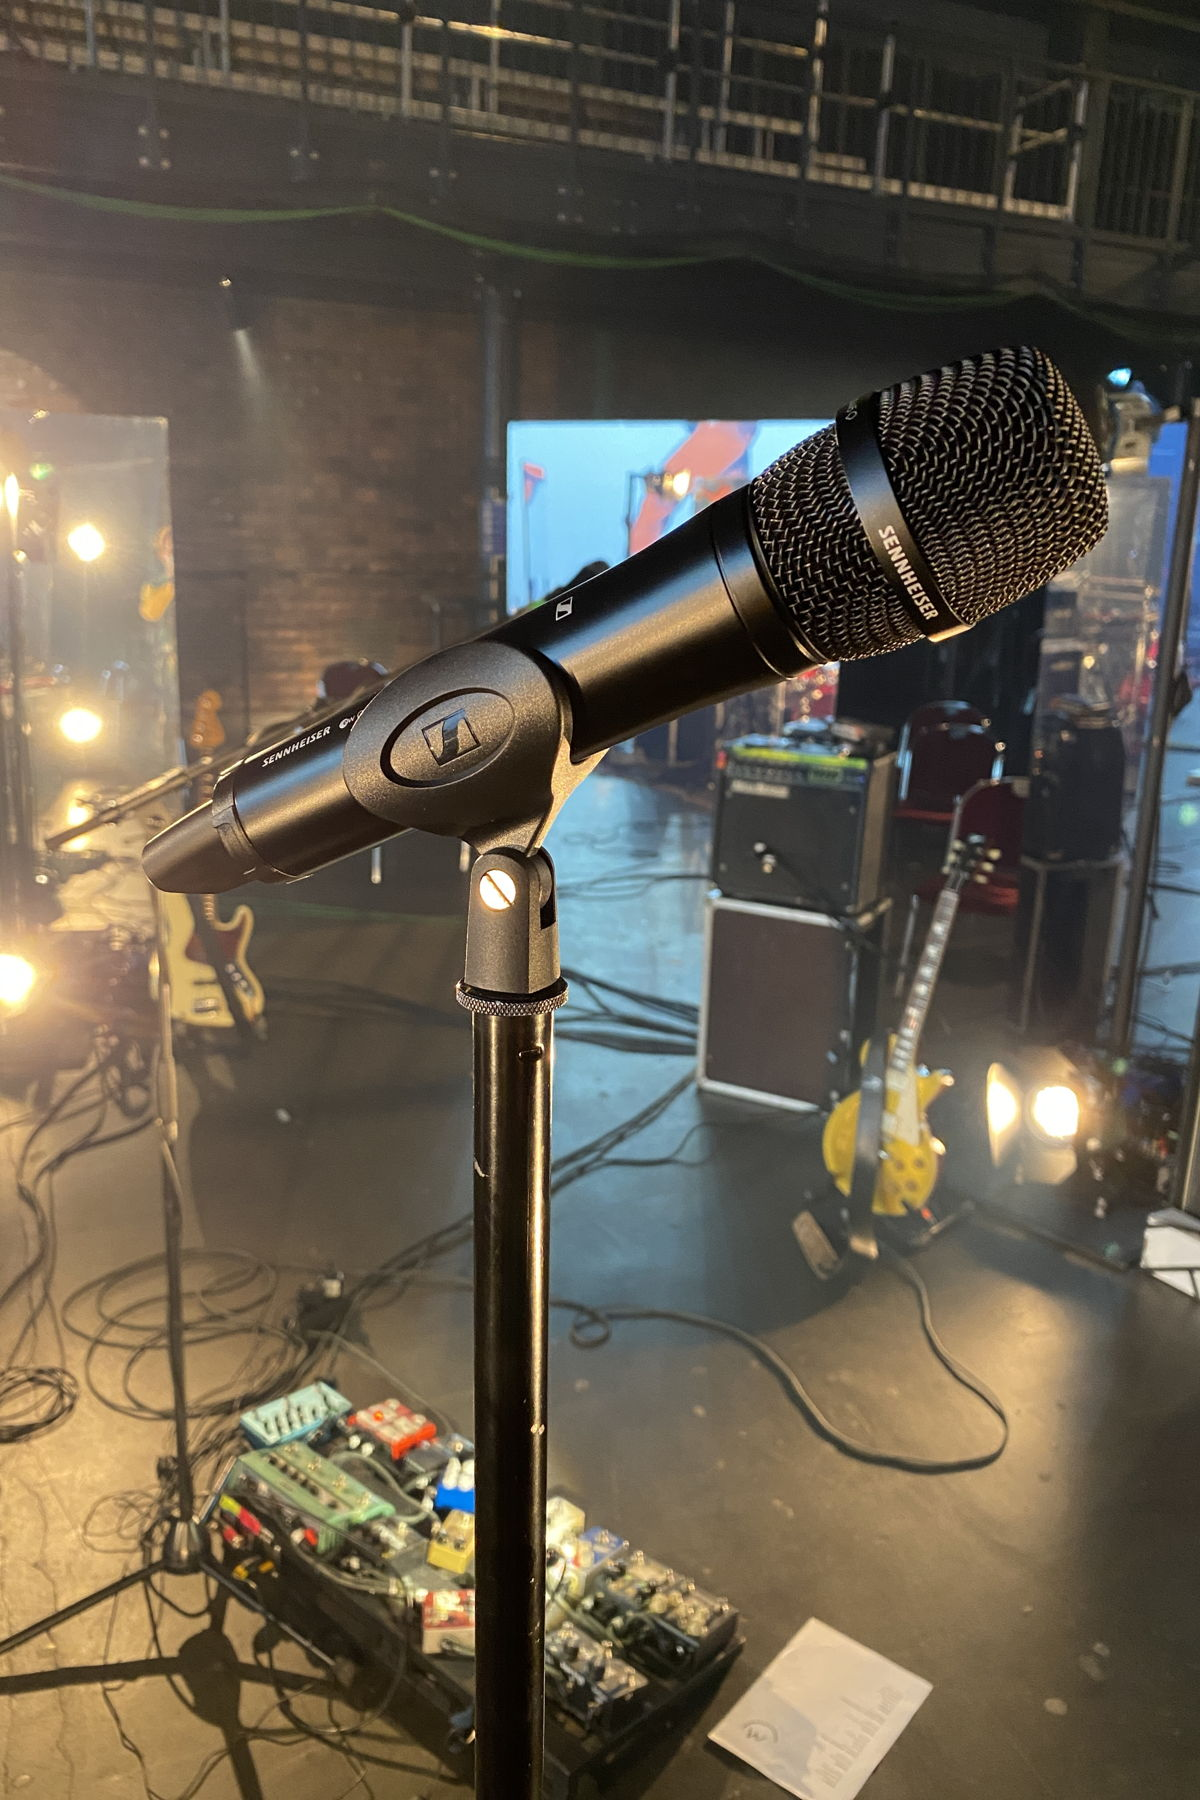 Milliarden's Ben Hartmann used an evolution wireless 500 G4 handheld transmitter with the new high-rejection MM 445 microphone head